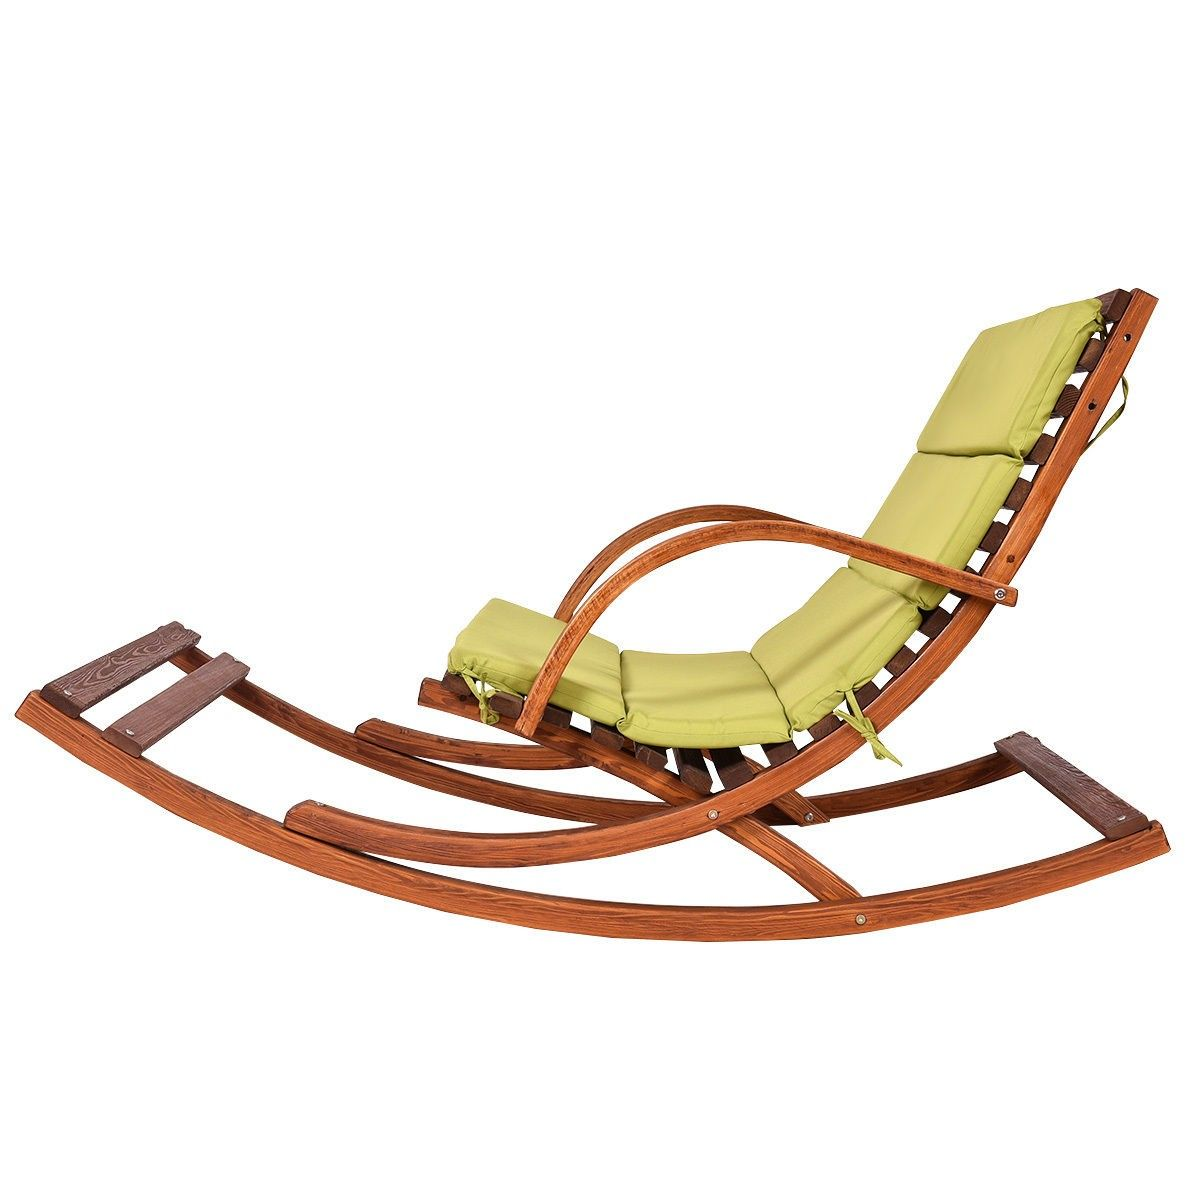 Outdoor 2 Persons Rocking Wooden Lounge Chair With Cushion Wooden Lounge Chair Outdoor Rocking Chairs Outdoor Chair Cushions